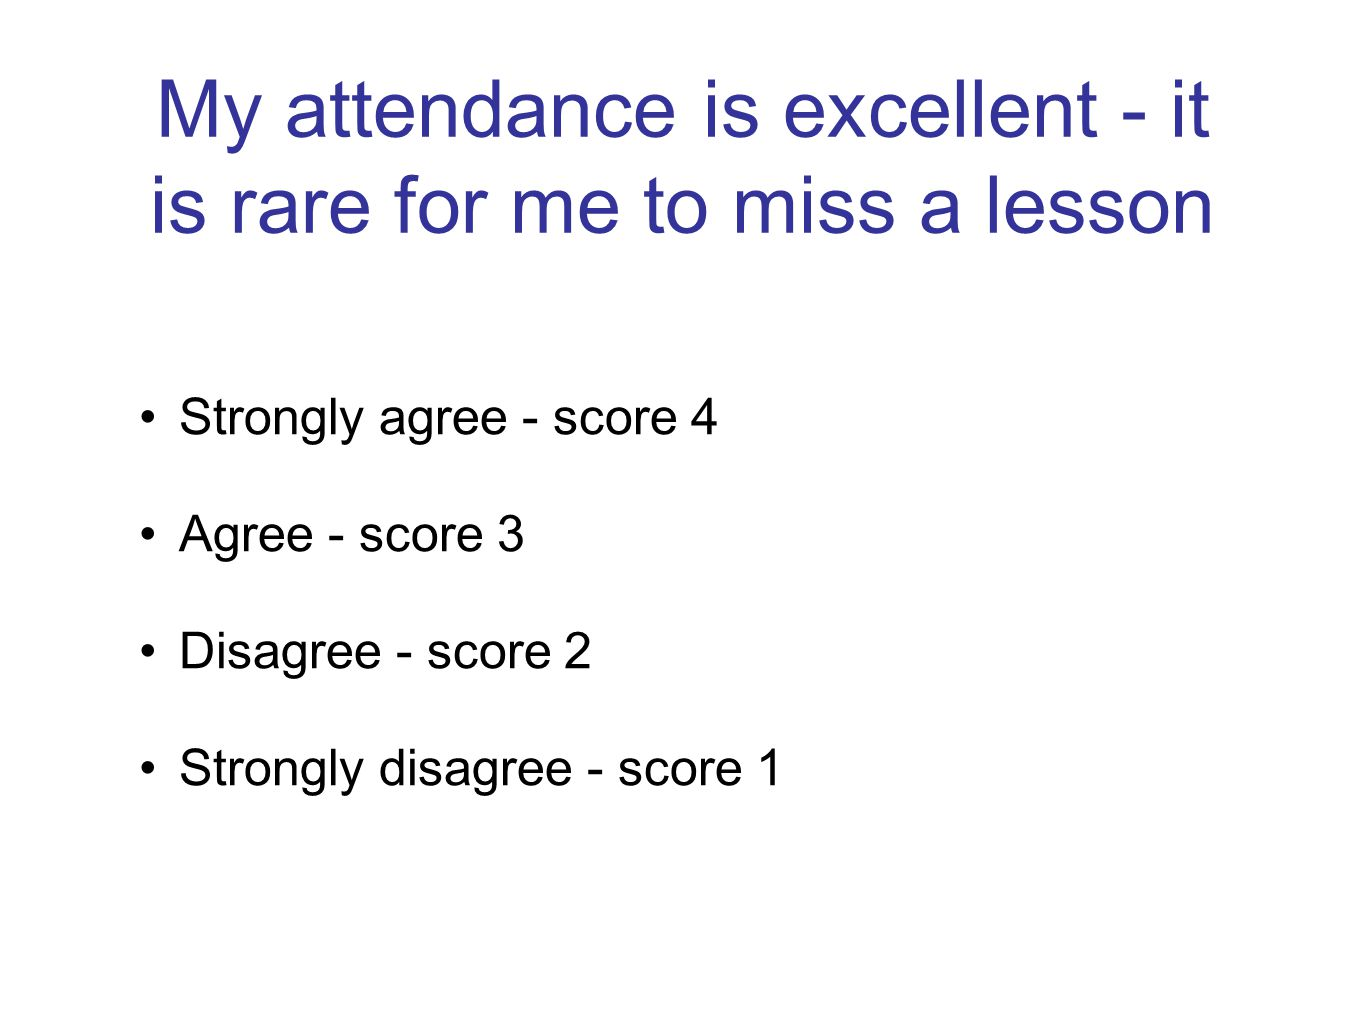 My attendance is excellent - it is rare for me to miss a lesson Strongly agree - score 4 Agree - score 3 Disagree - score 2 Strongly disagree - score 1